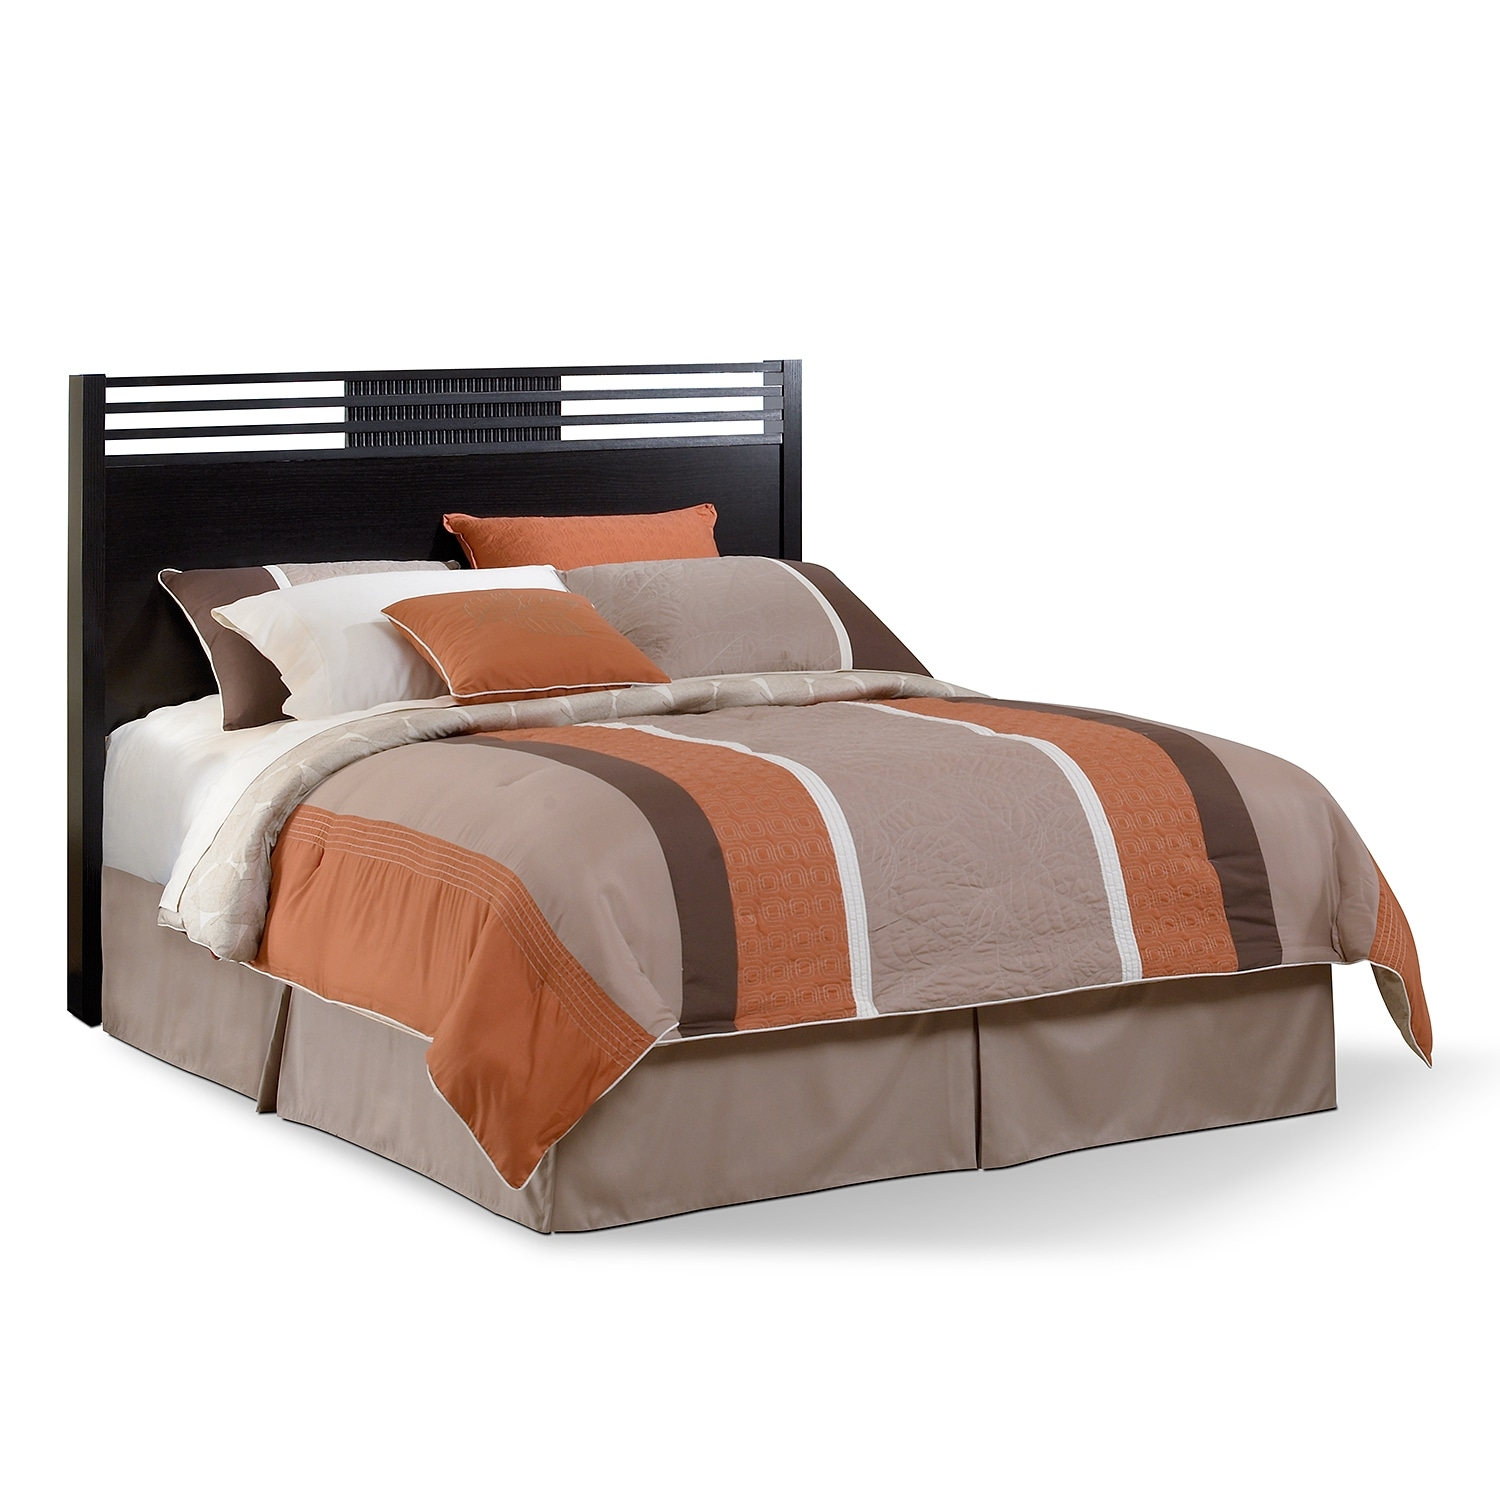 Bally King Headboard - Espresso